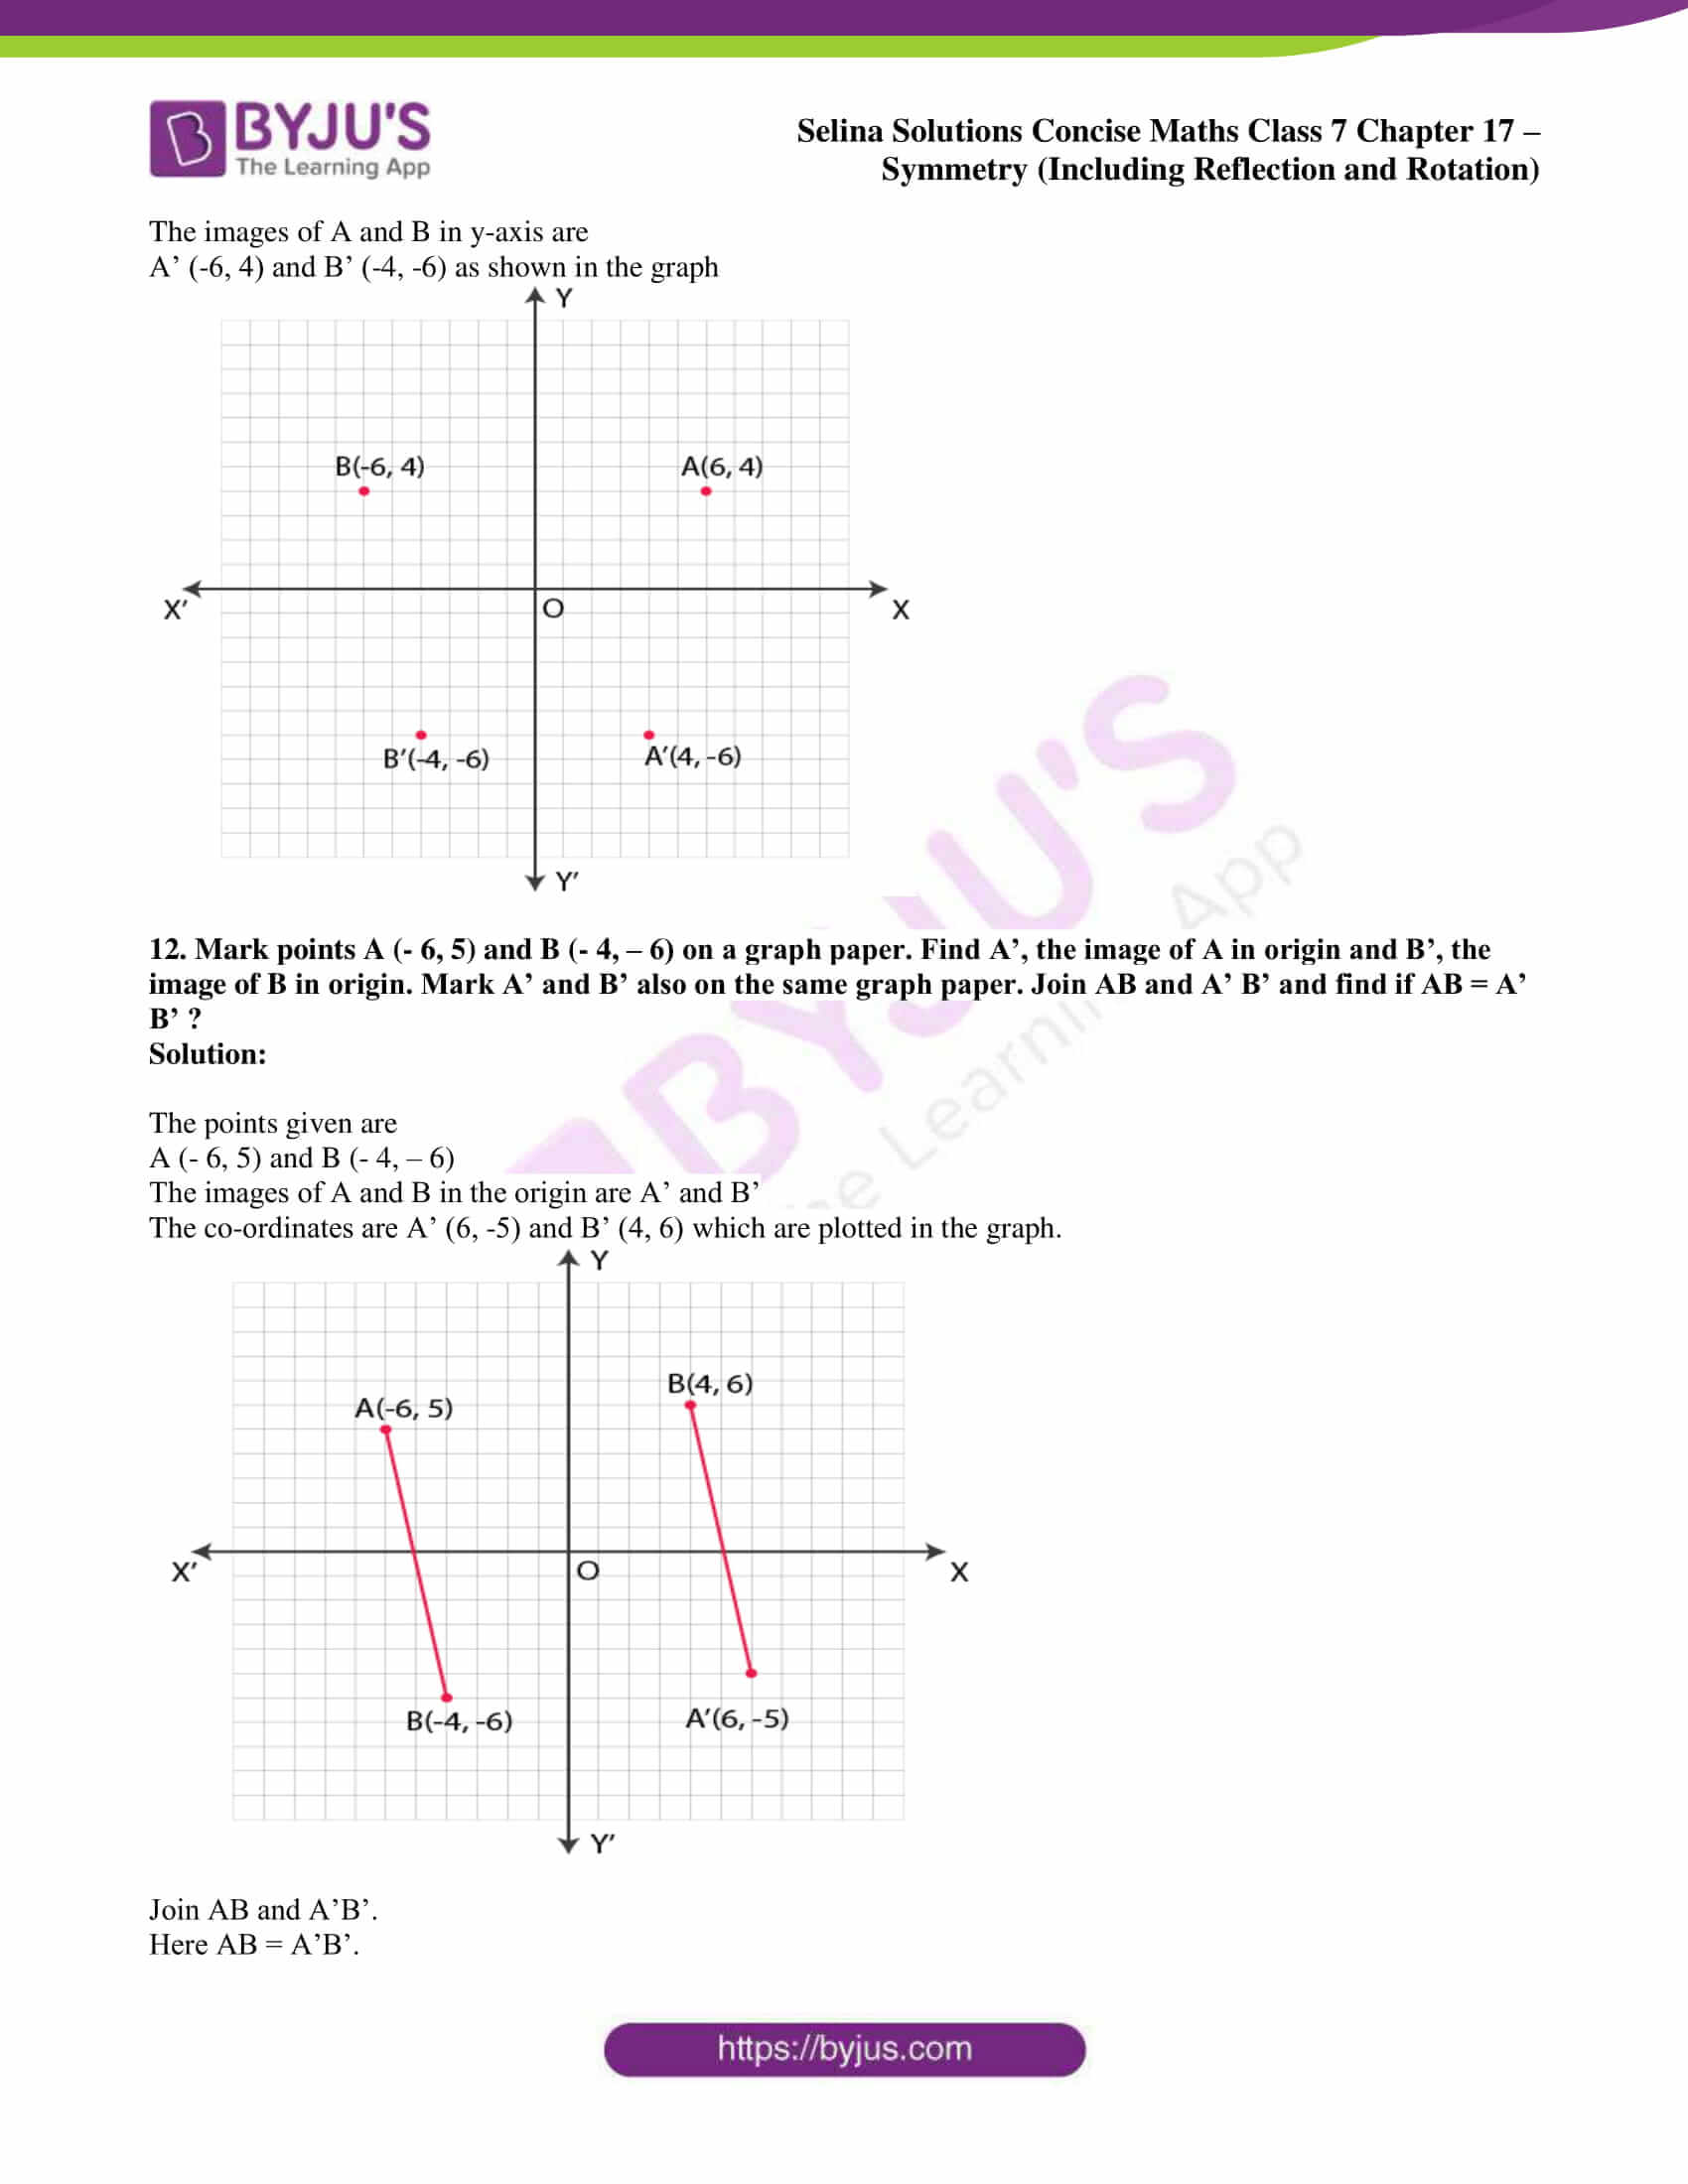 selina sol concise maths class 7 chapter 17 ex b 8